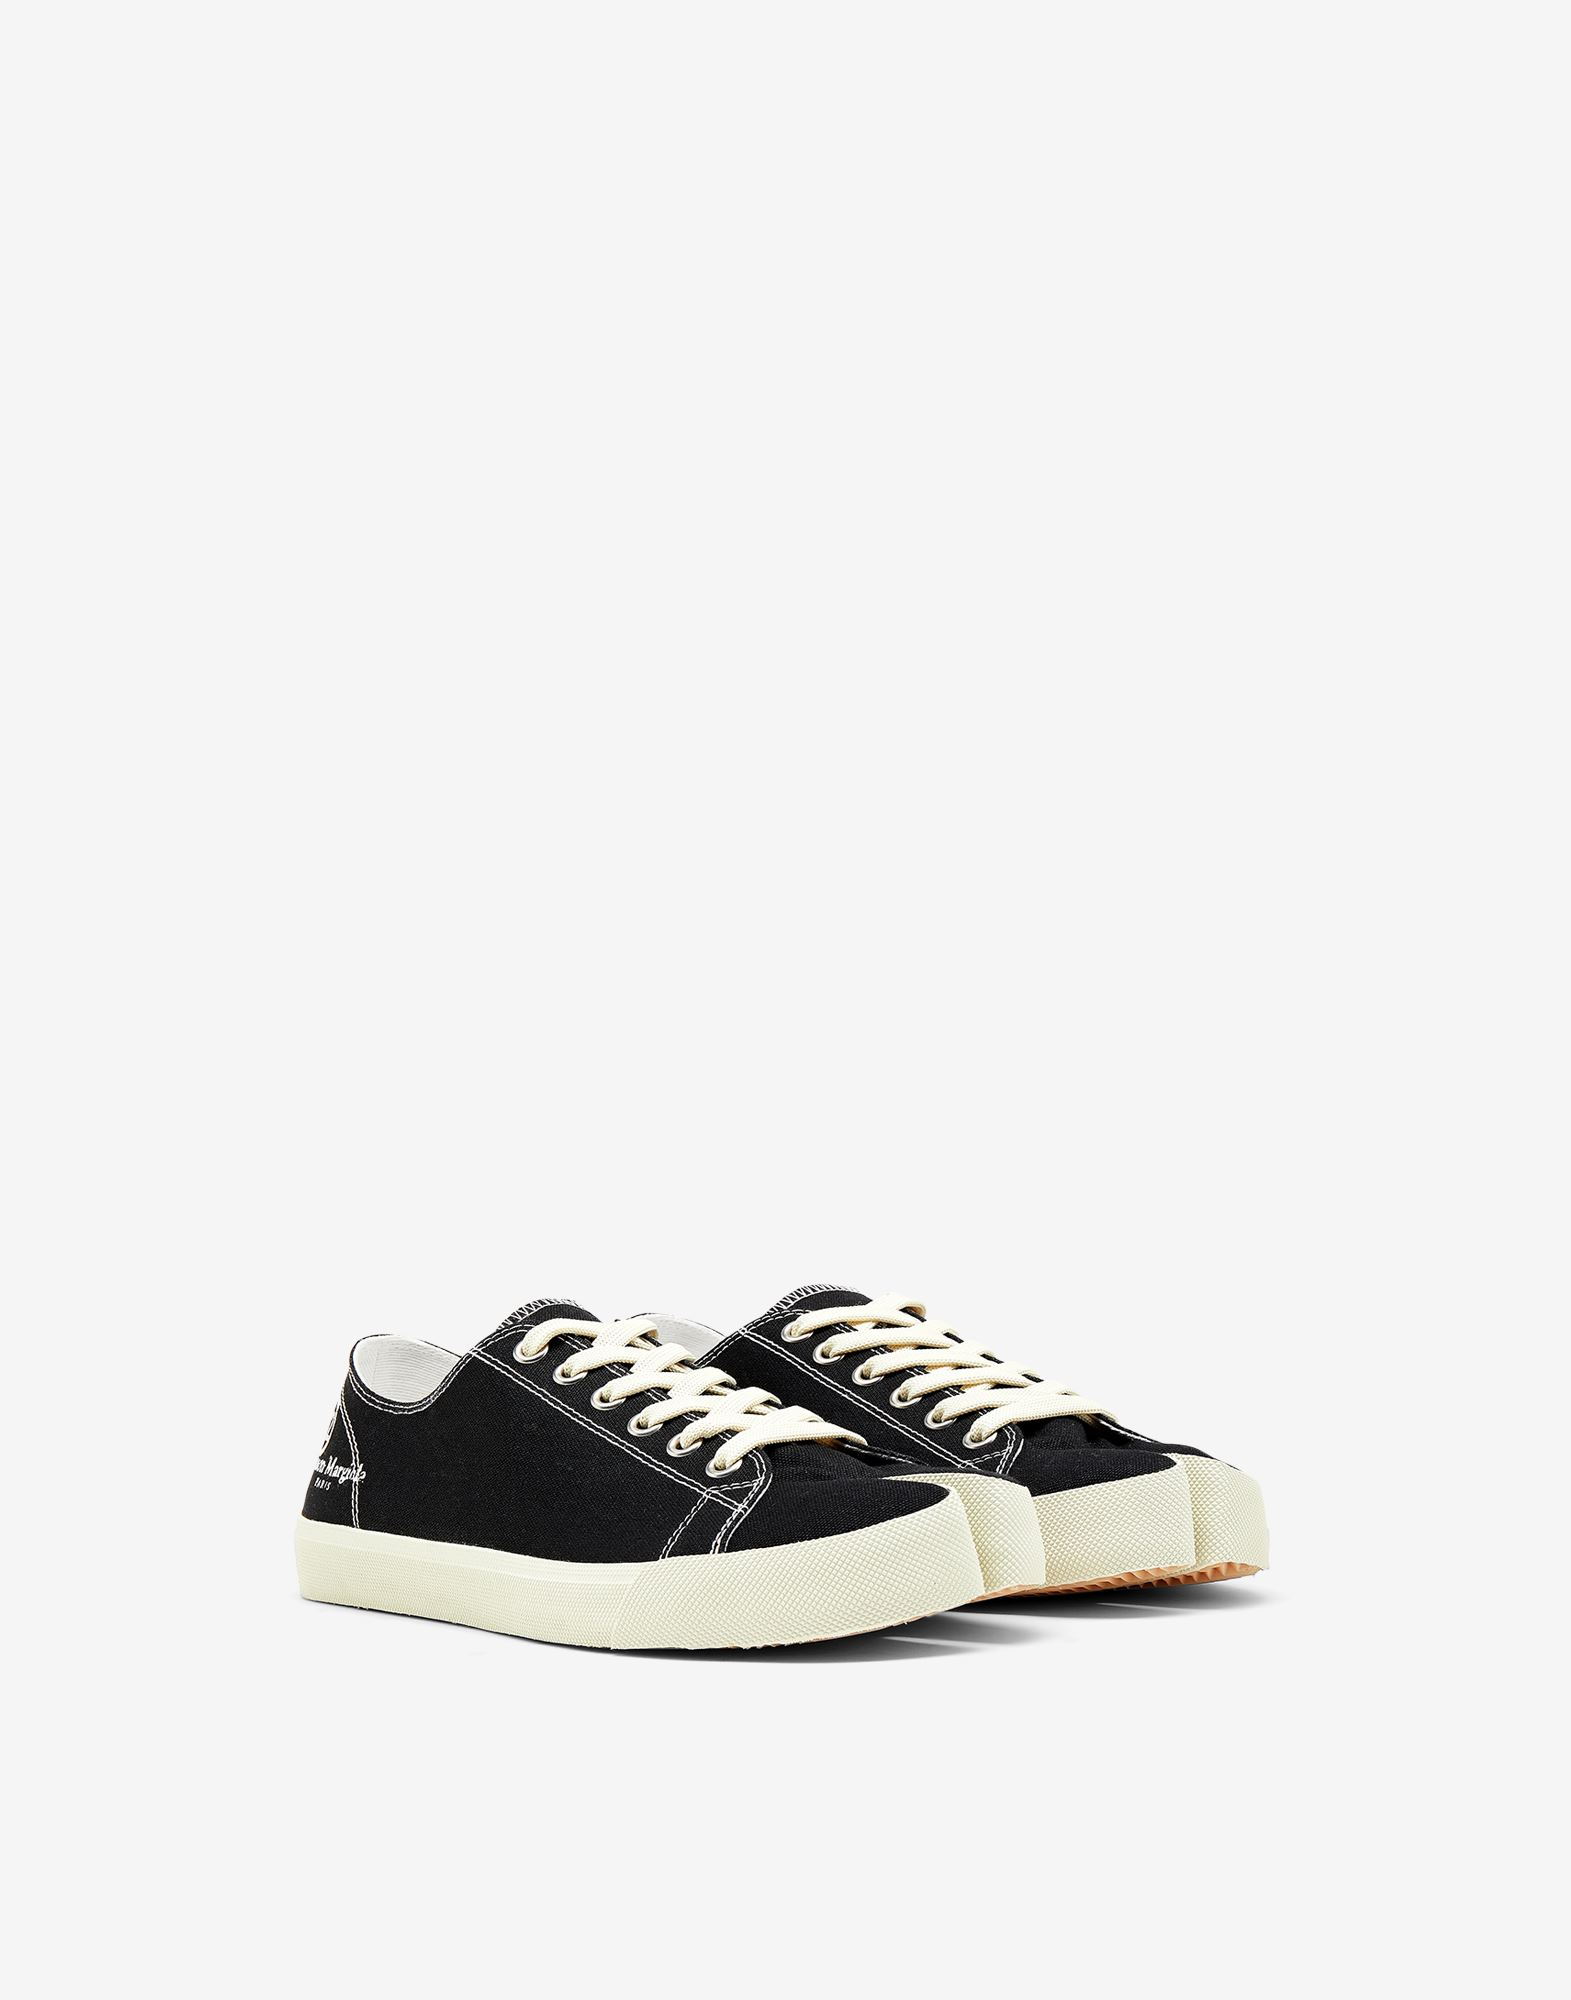 MAISON MARGIELA Tabi low top sneakers Sneakers Tabi Man r